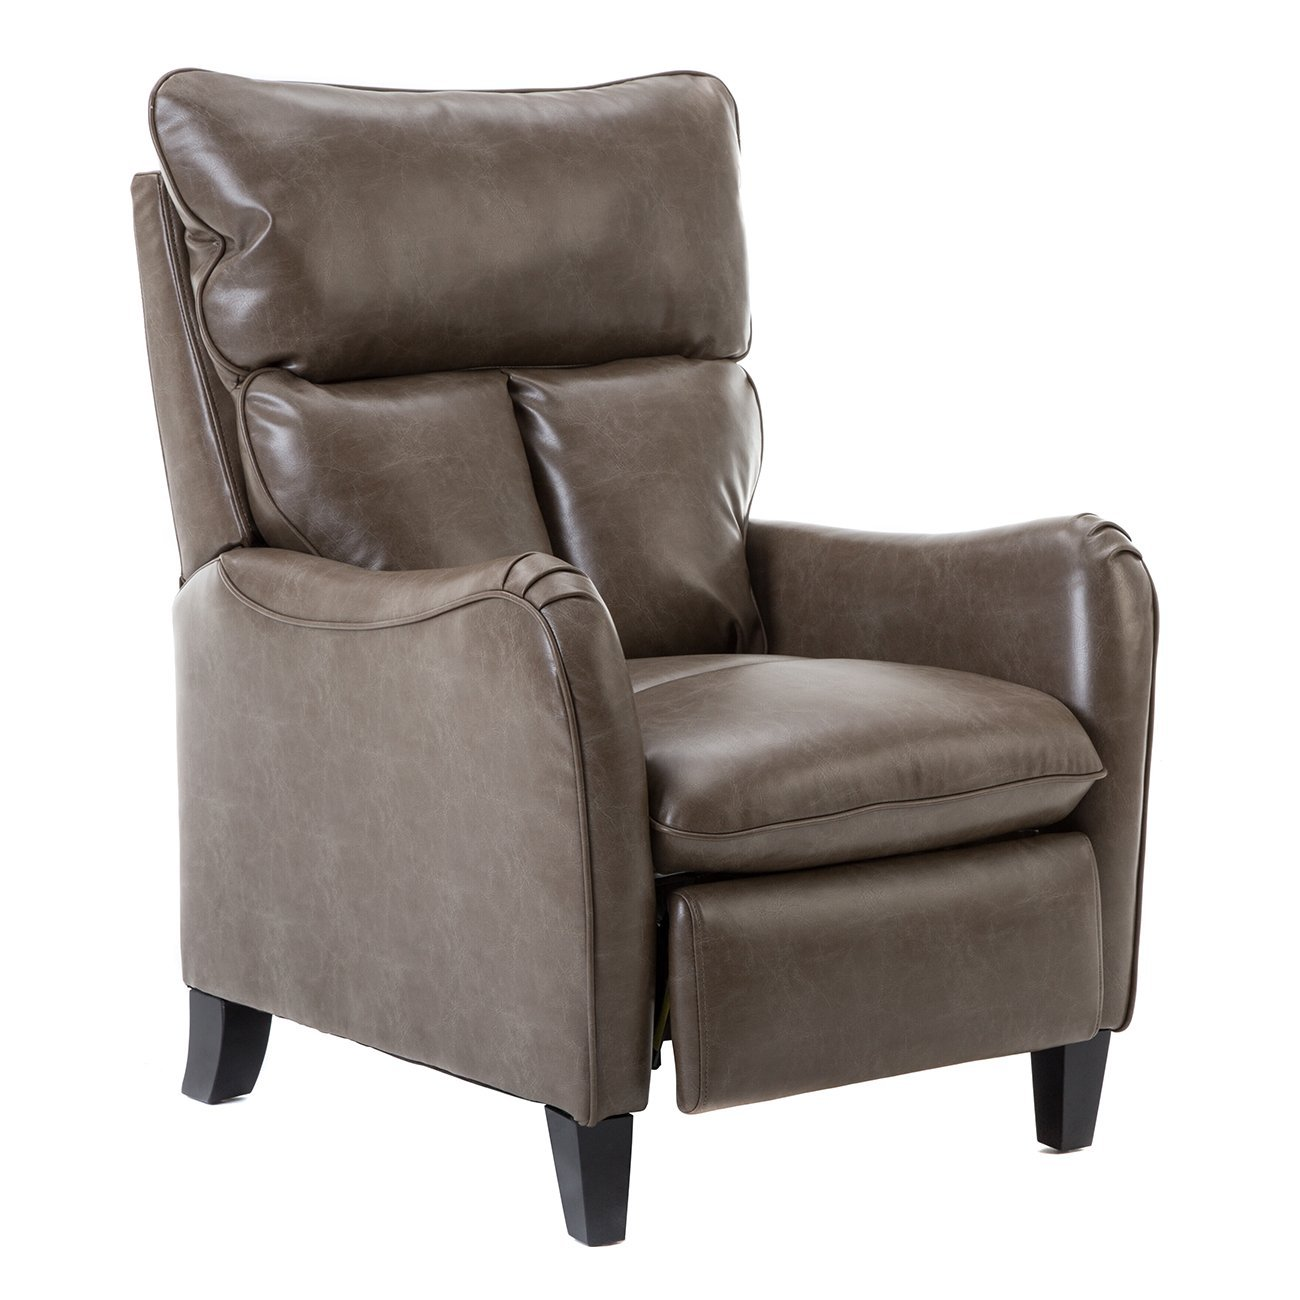 Pleasant Cheap Taupe Leather Recliner Find Taupe Leather Recliner Gmtry Best Dining Table And Chair Ideas Images Gmtryco